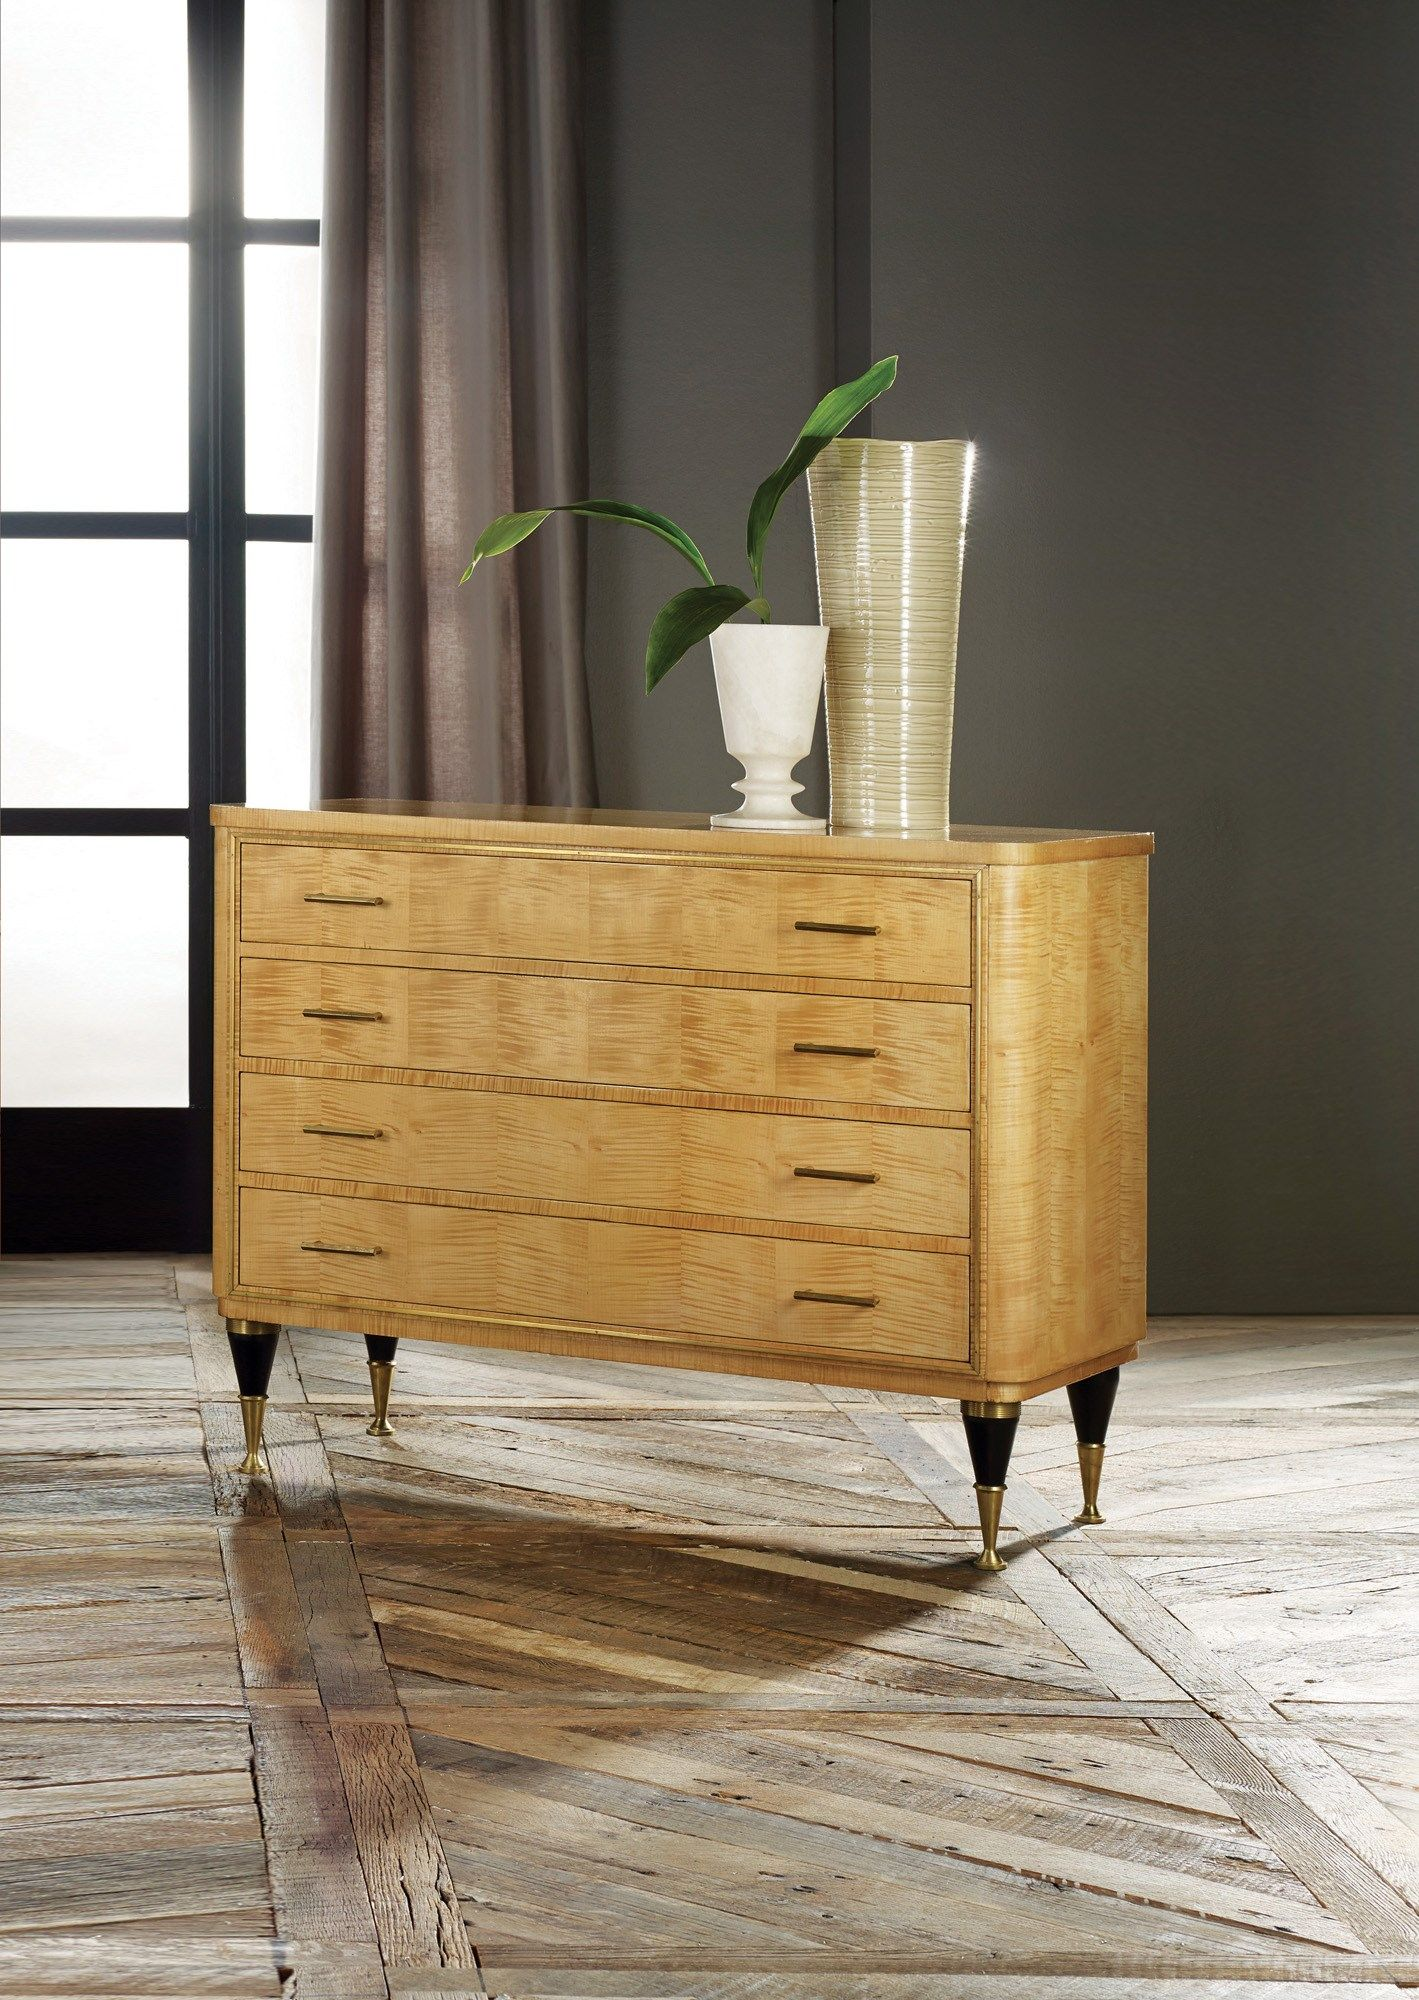 Modern Furniture History Modern History Furniture Modern History Furniture Dresser